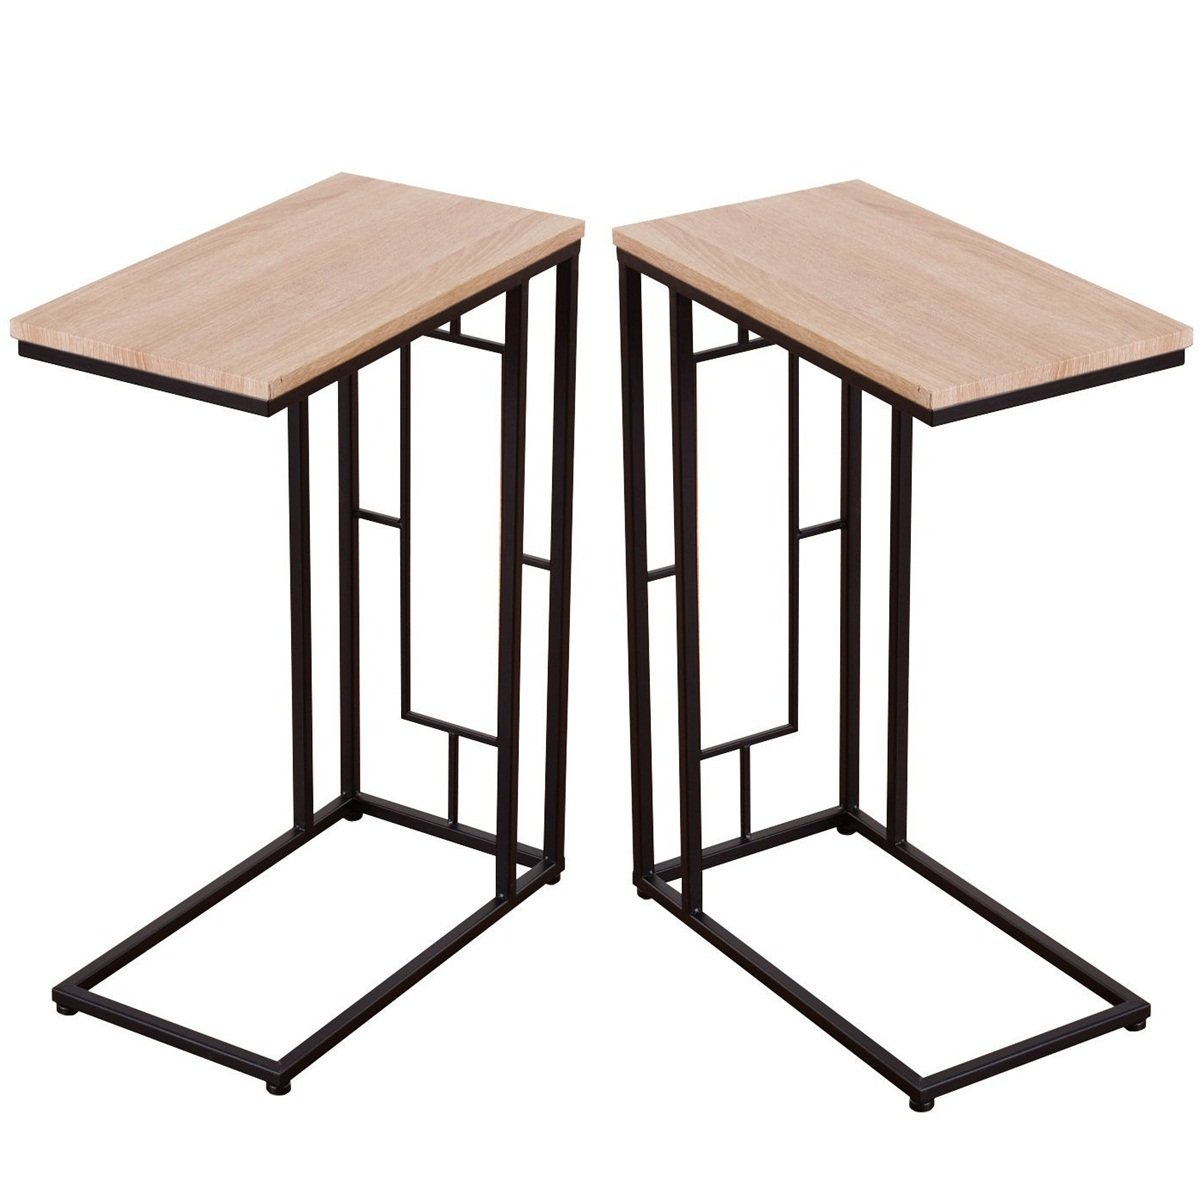 2 Pcs Minimal Style C shape Functional Side End Table